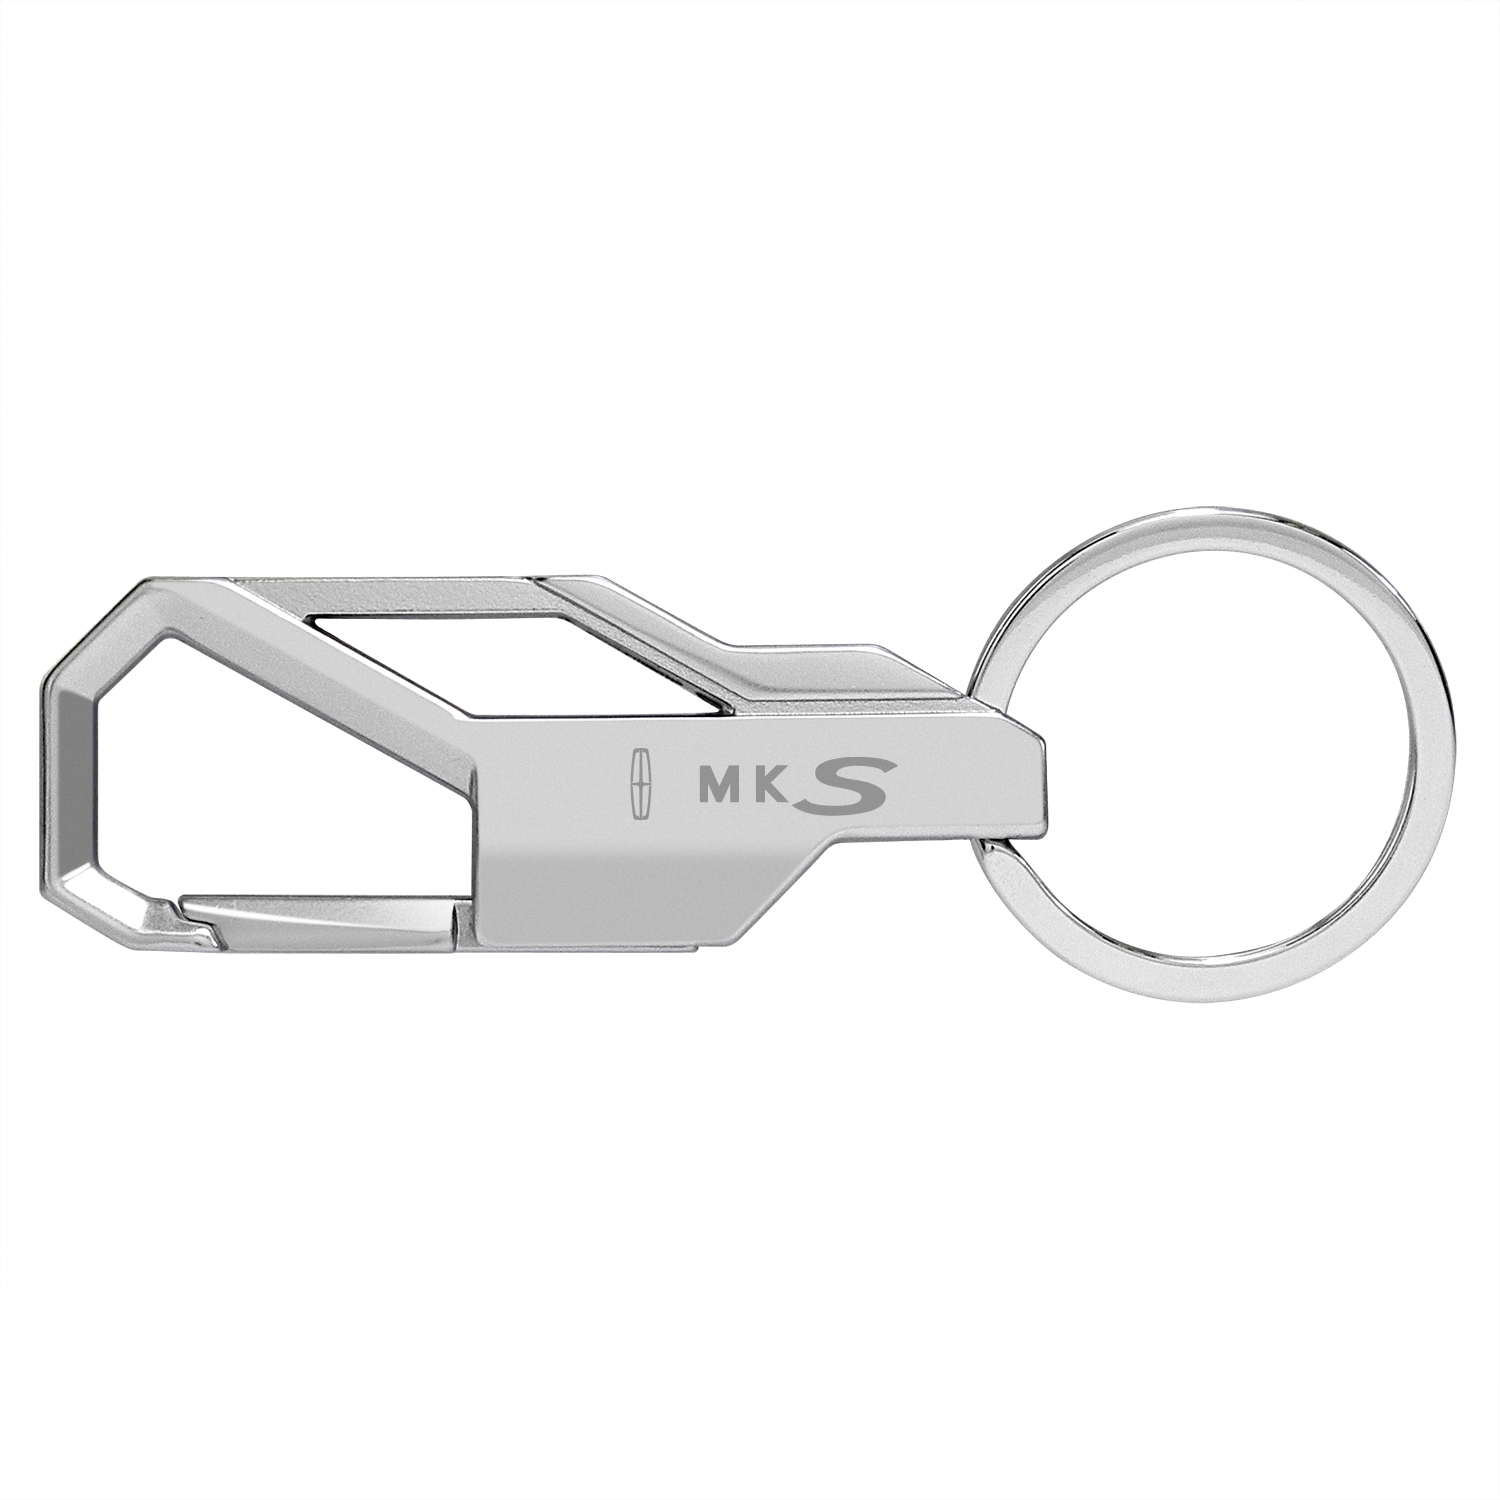 Lincoln MKS Silver Snap Hook Metal Key Chain